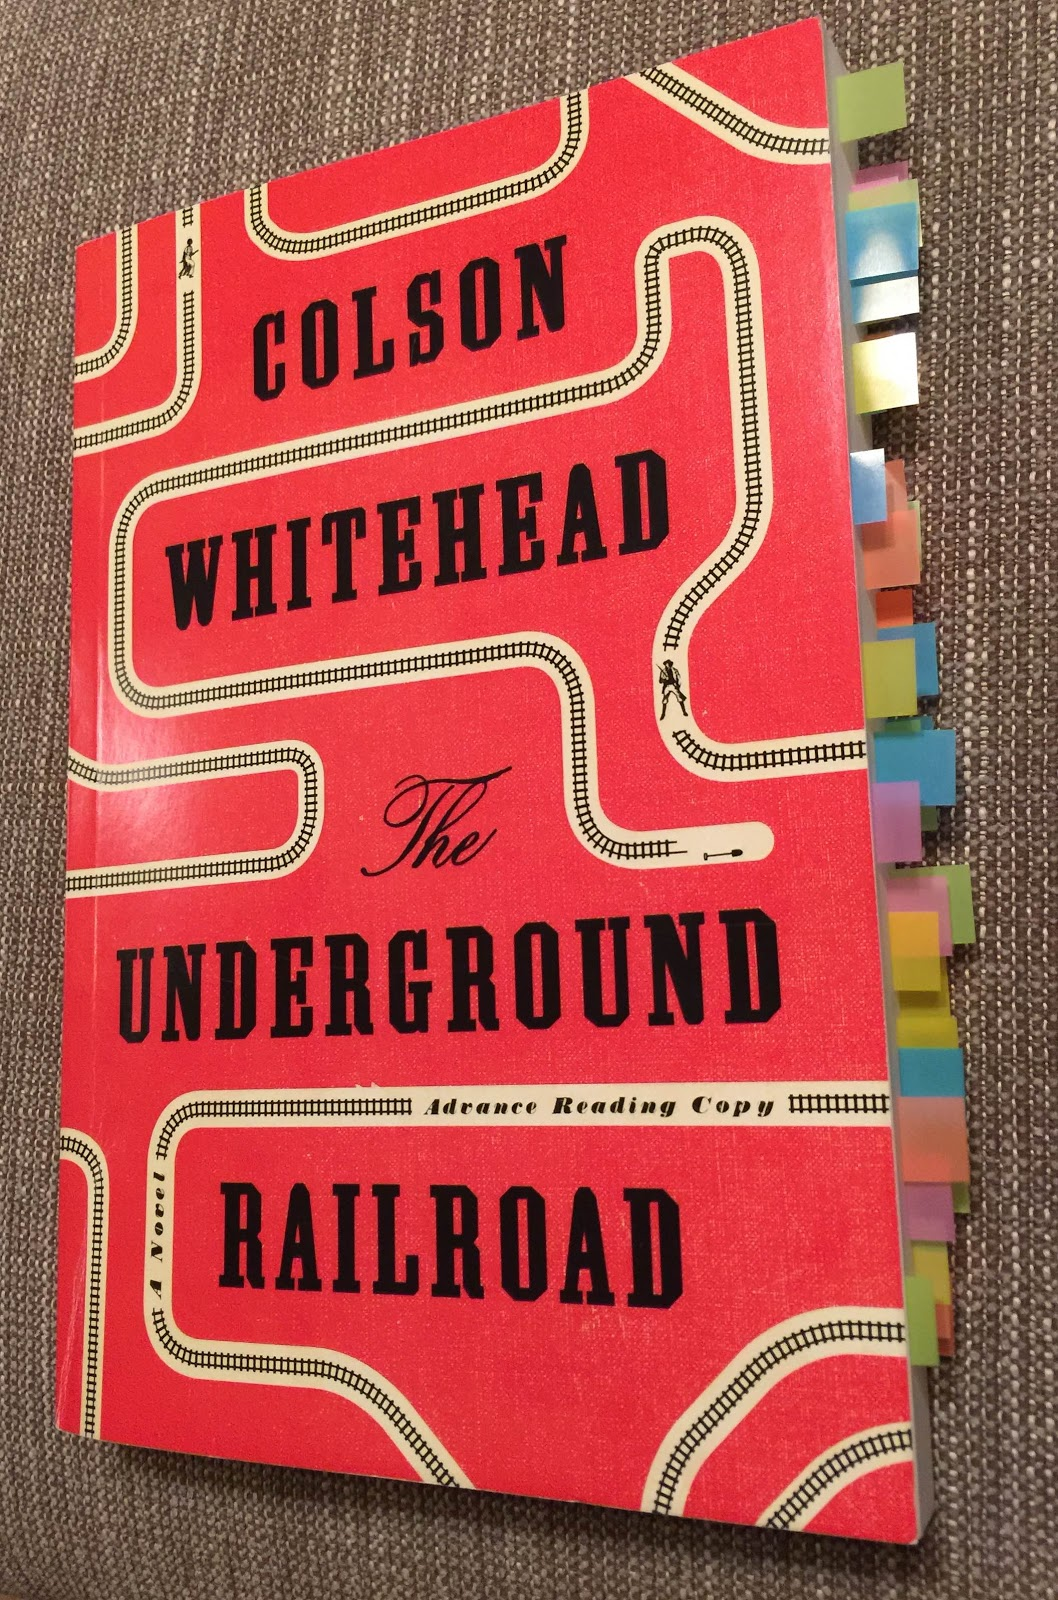 Monlatable Book Reviews The Underground Railroad By Colson Whitehead Review